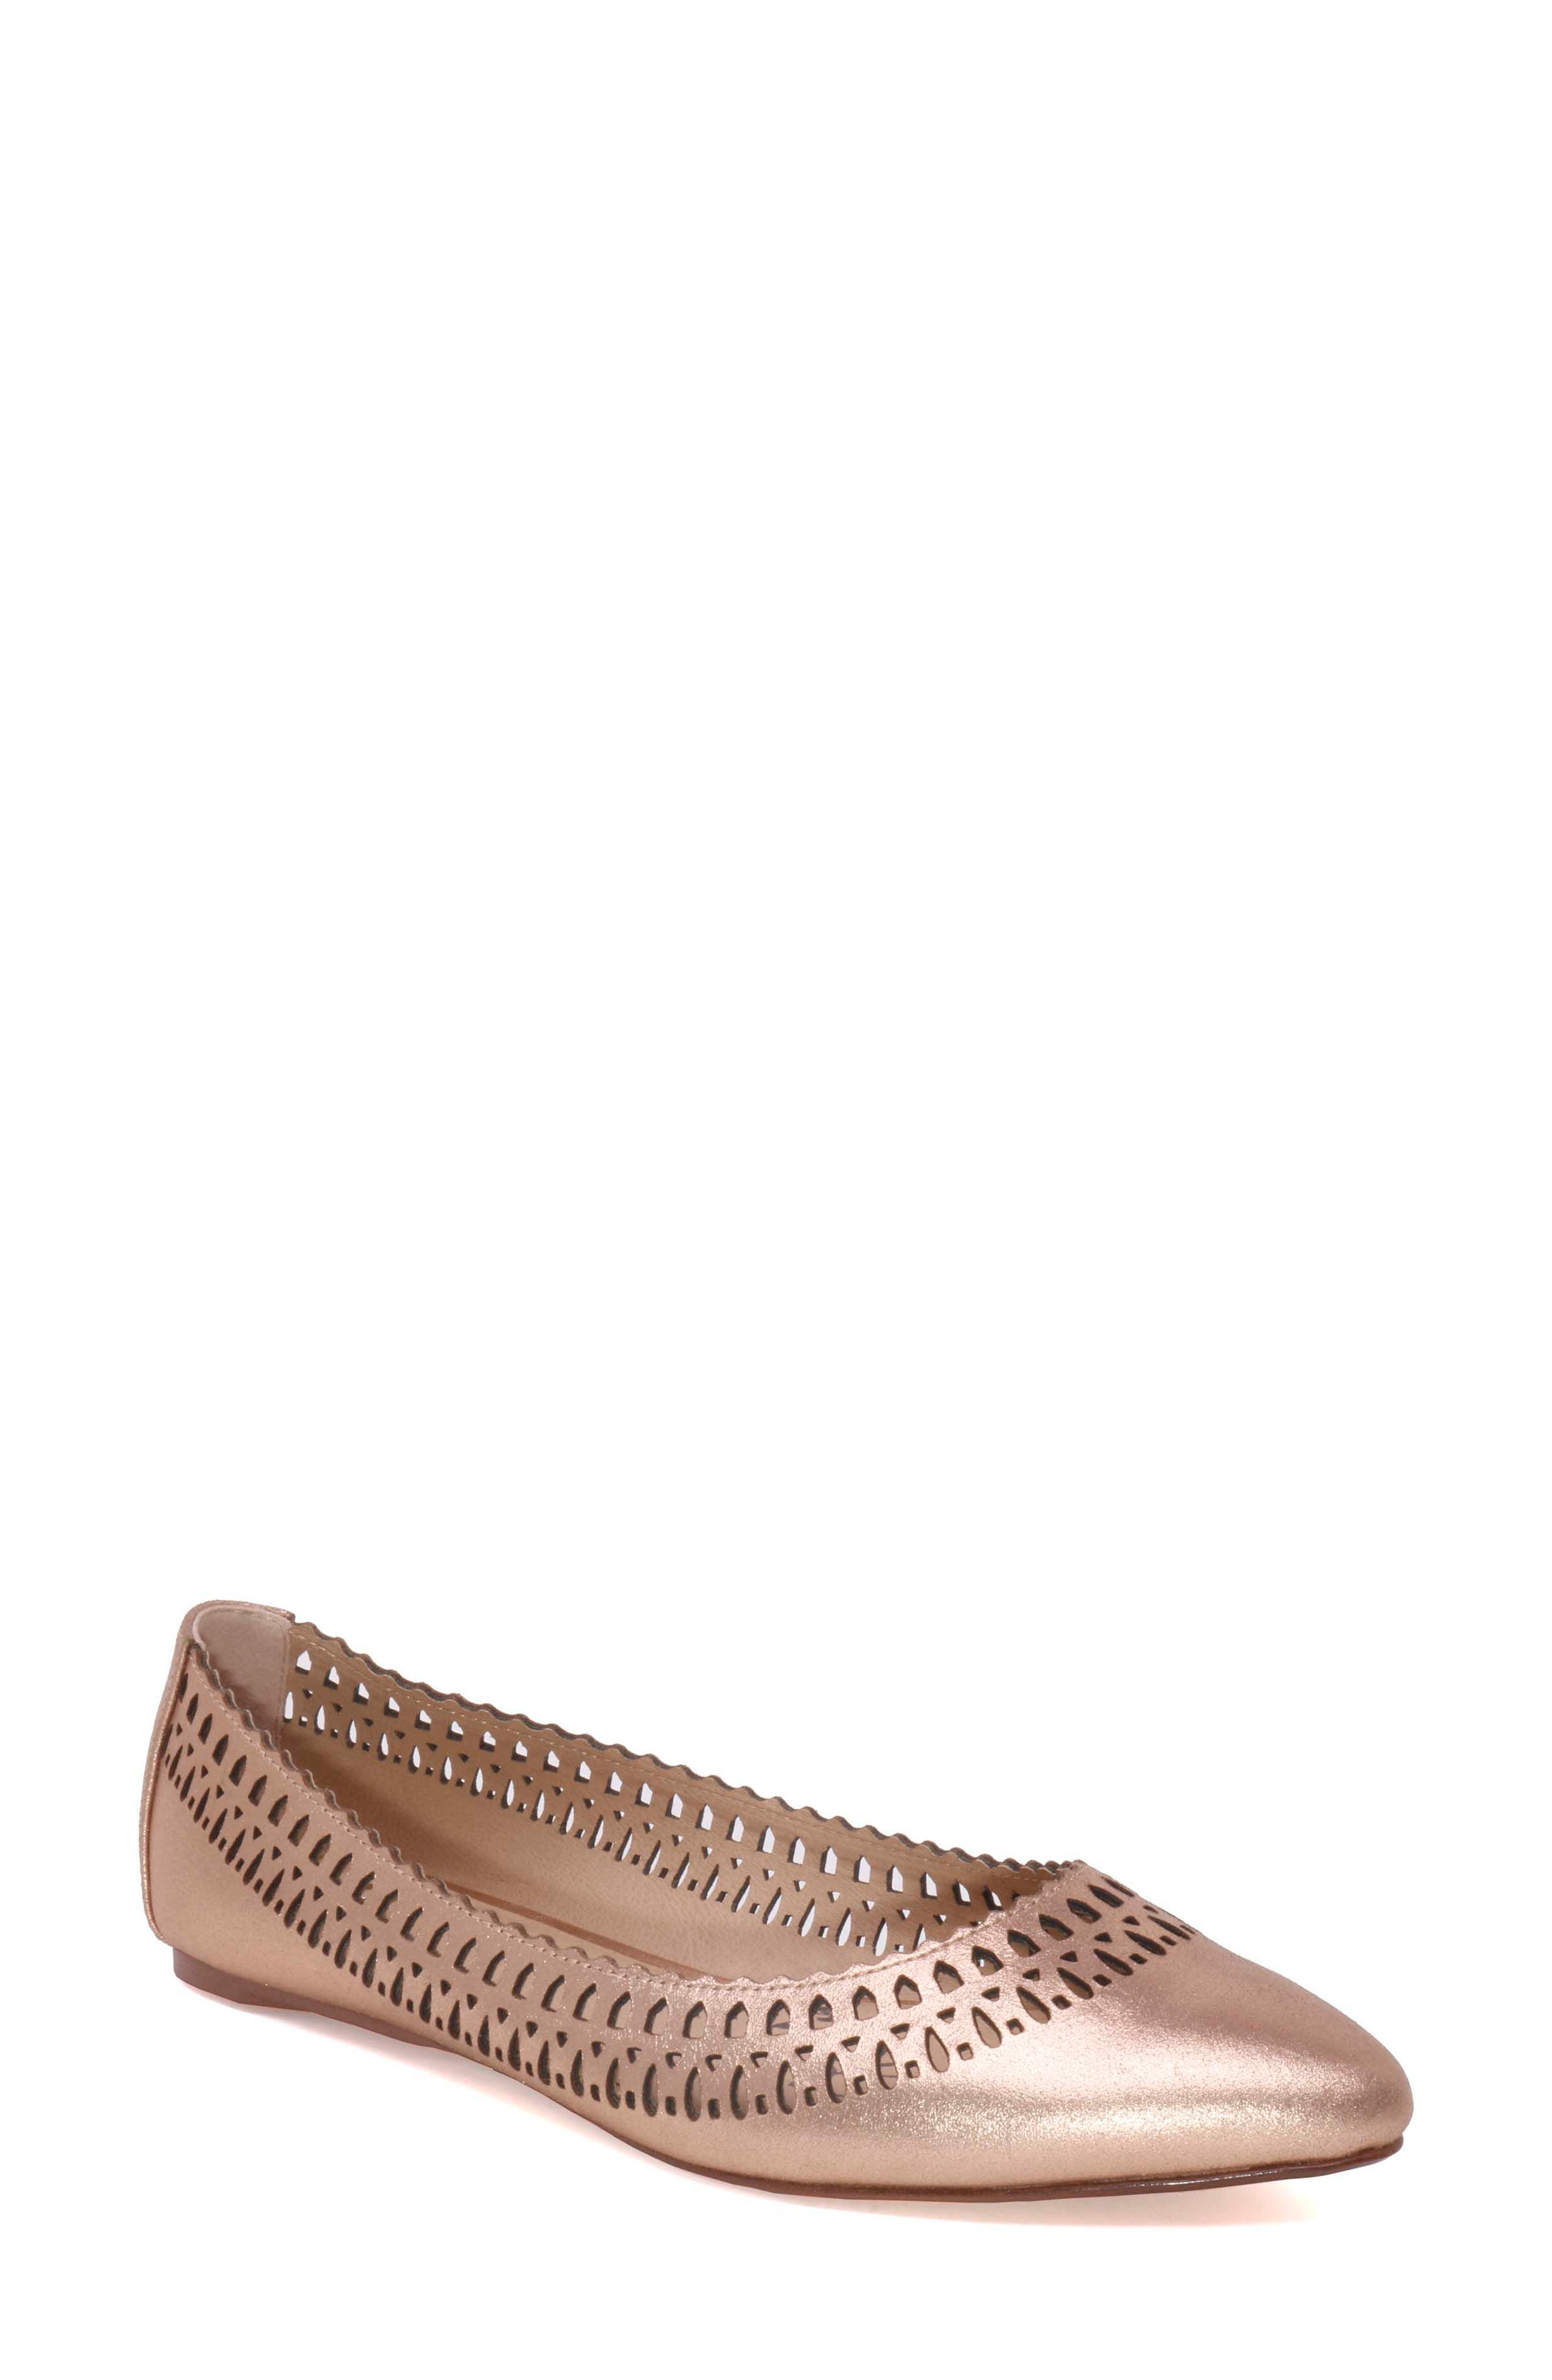 Cora Flat,                             Main thumbnail 1, color,                             Rose Gold Leather